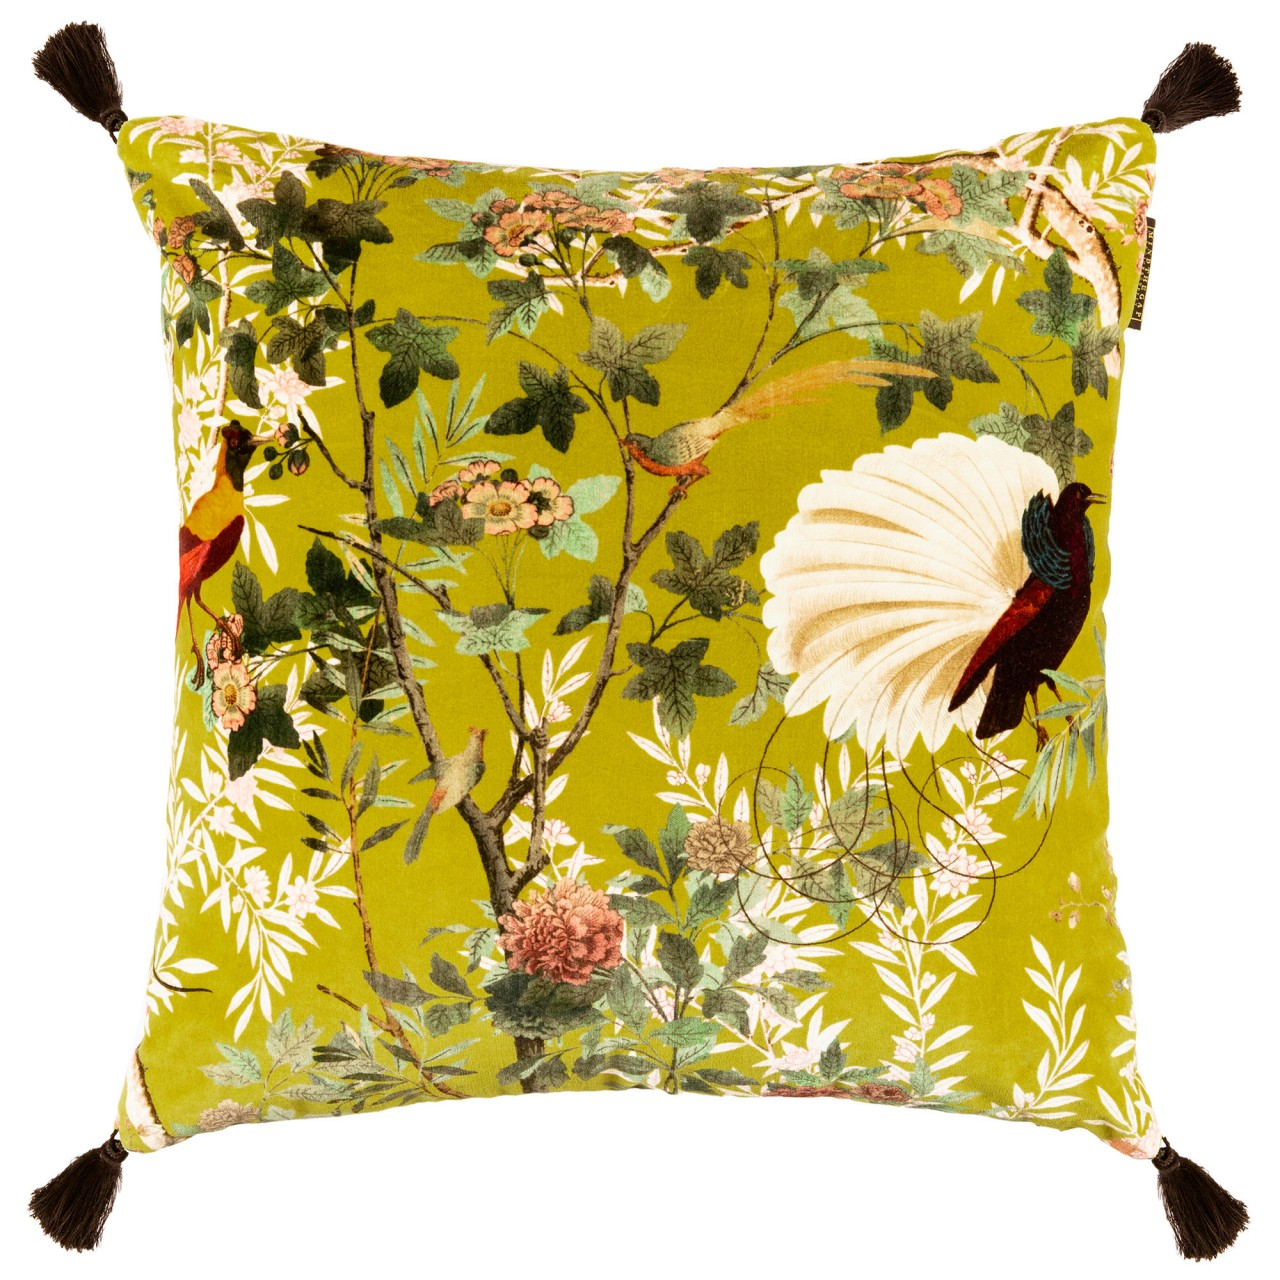 SPANISH EMBROIDERY Velvet Embroidered Cushion